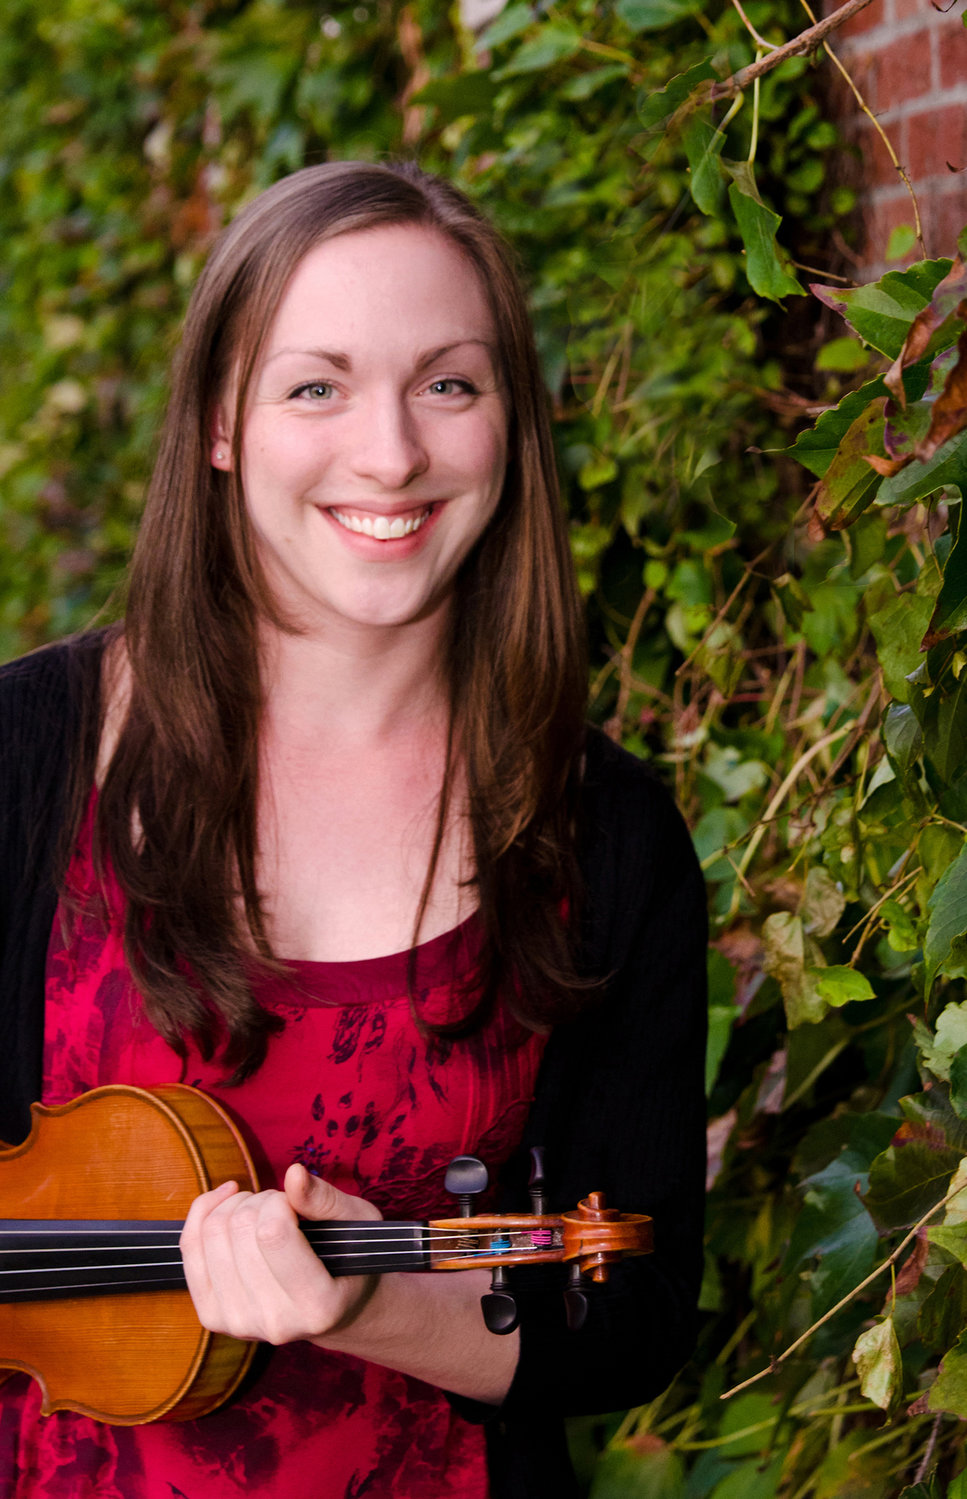 Julie Metcalf performs at the Rehoboth contra dance on Friday, January 24